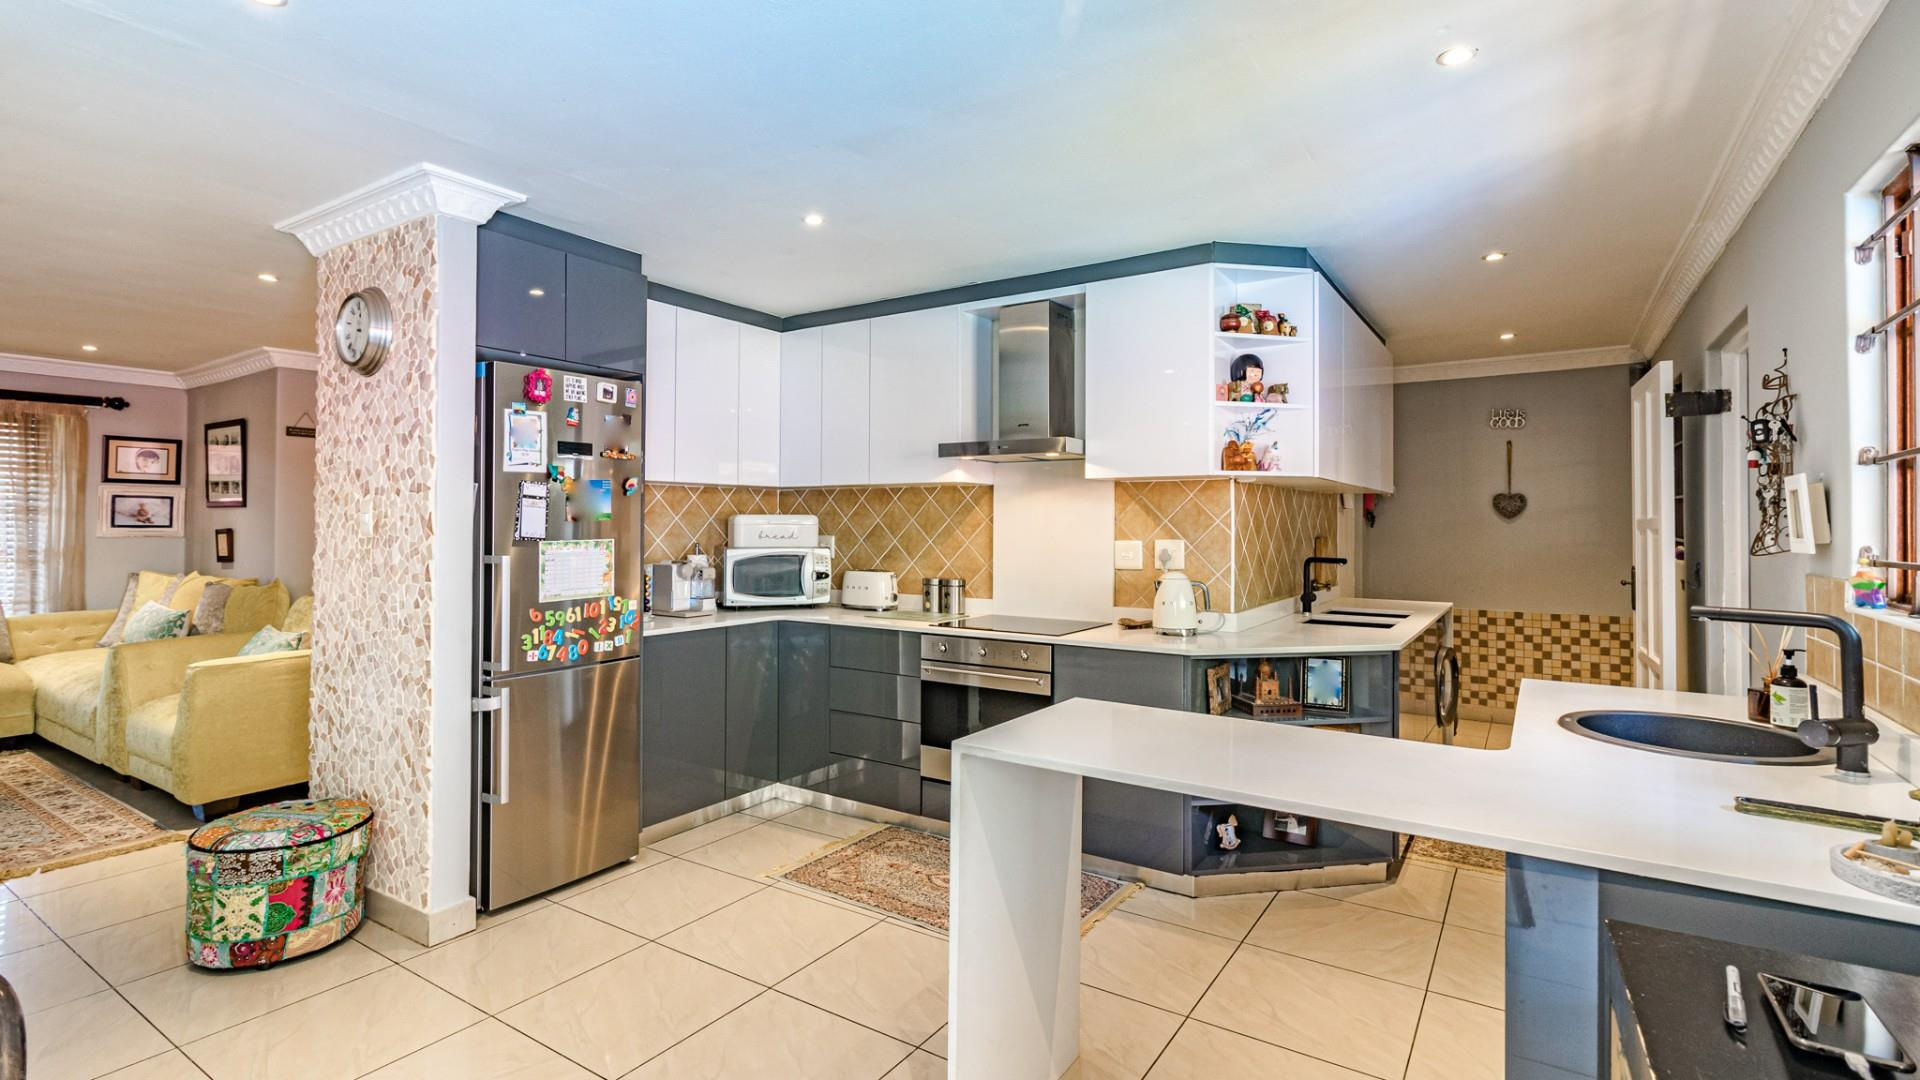 3 Bedroom Townhouse For Sale in Morningside | RE/MAX™ of ...